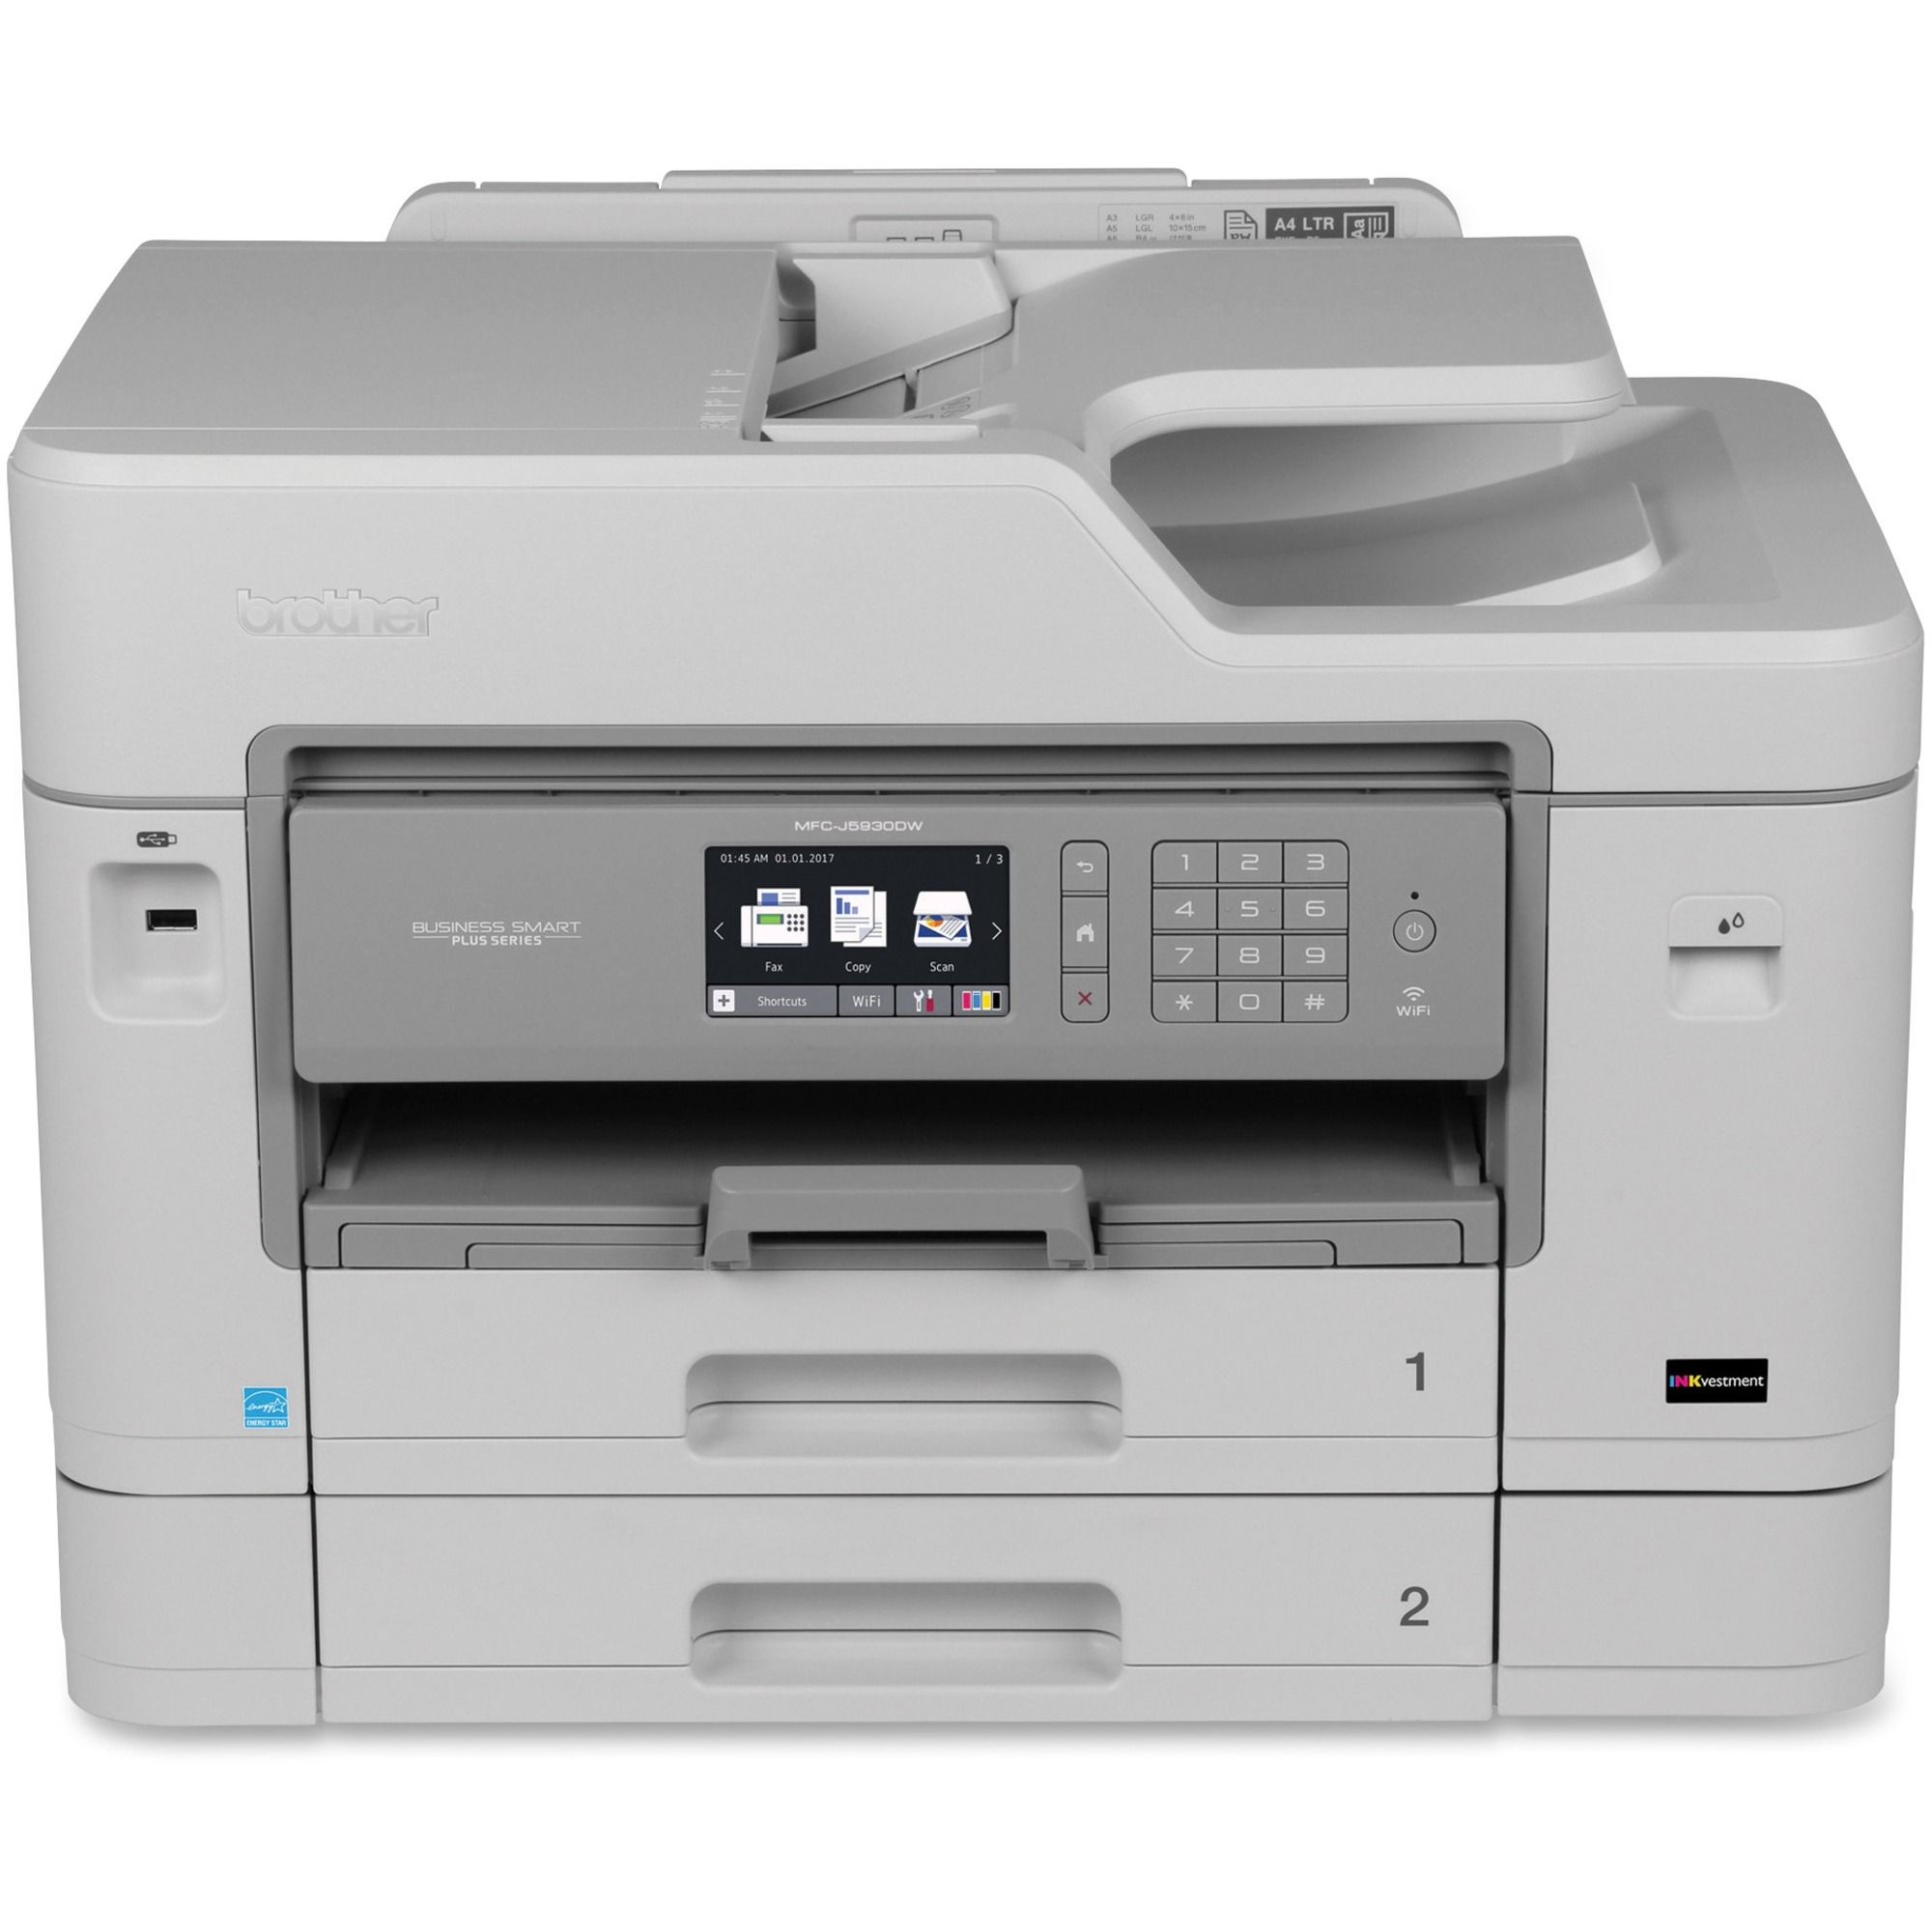 Brother Work Smart Mfc J460dw Inkjet Multifunction Printer Color